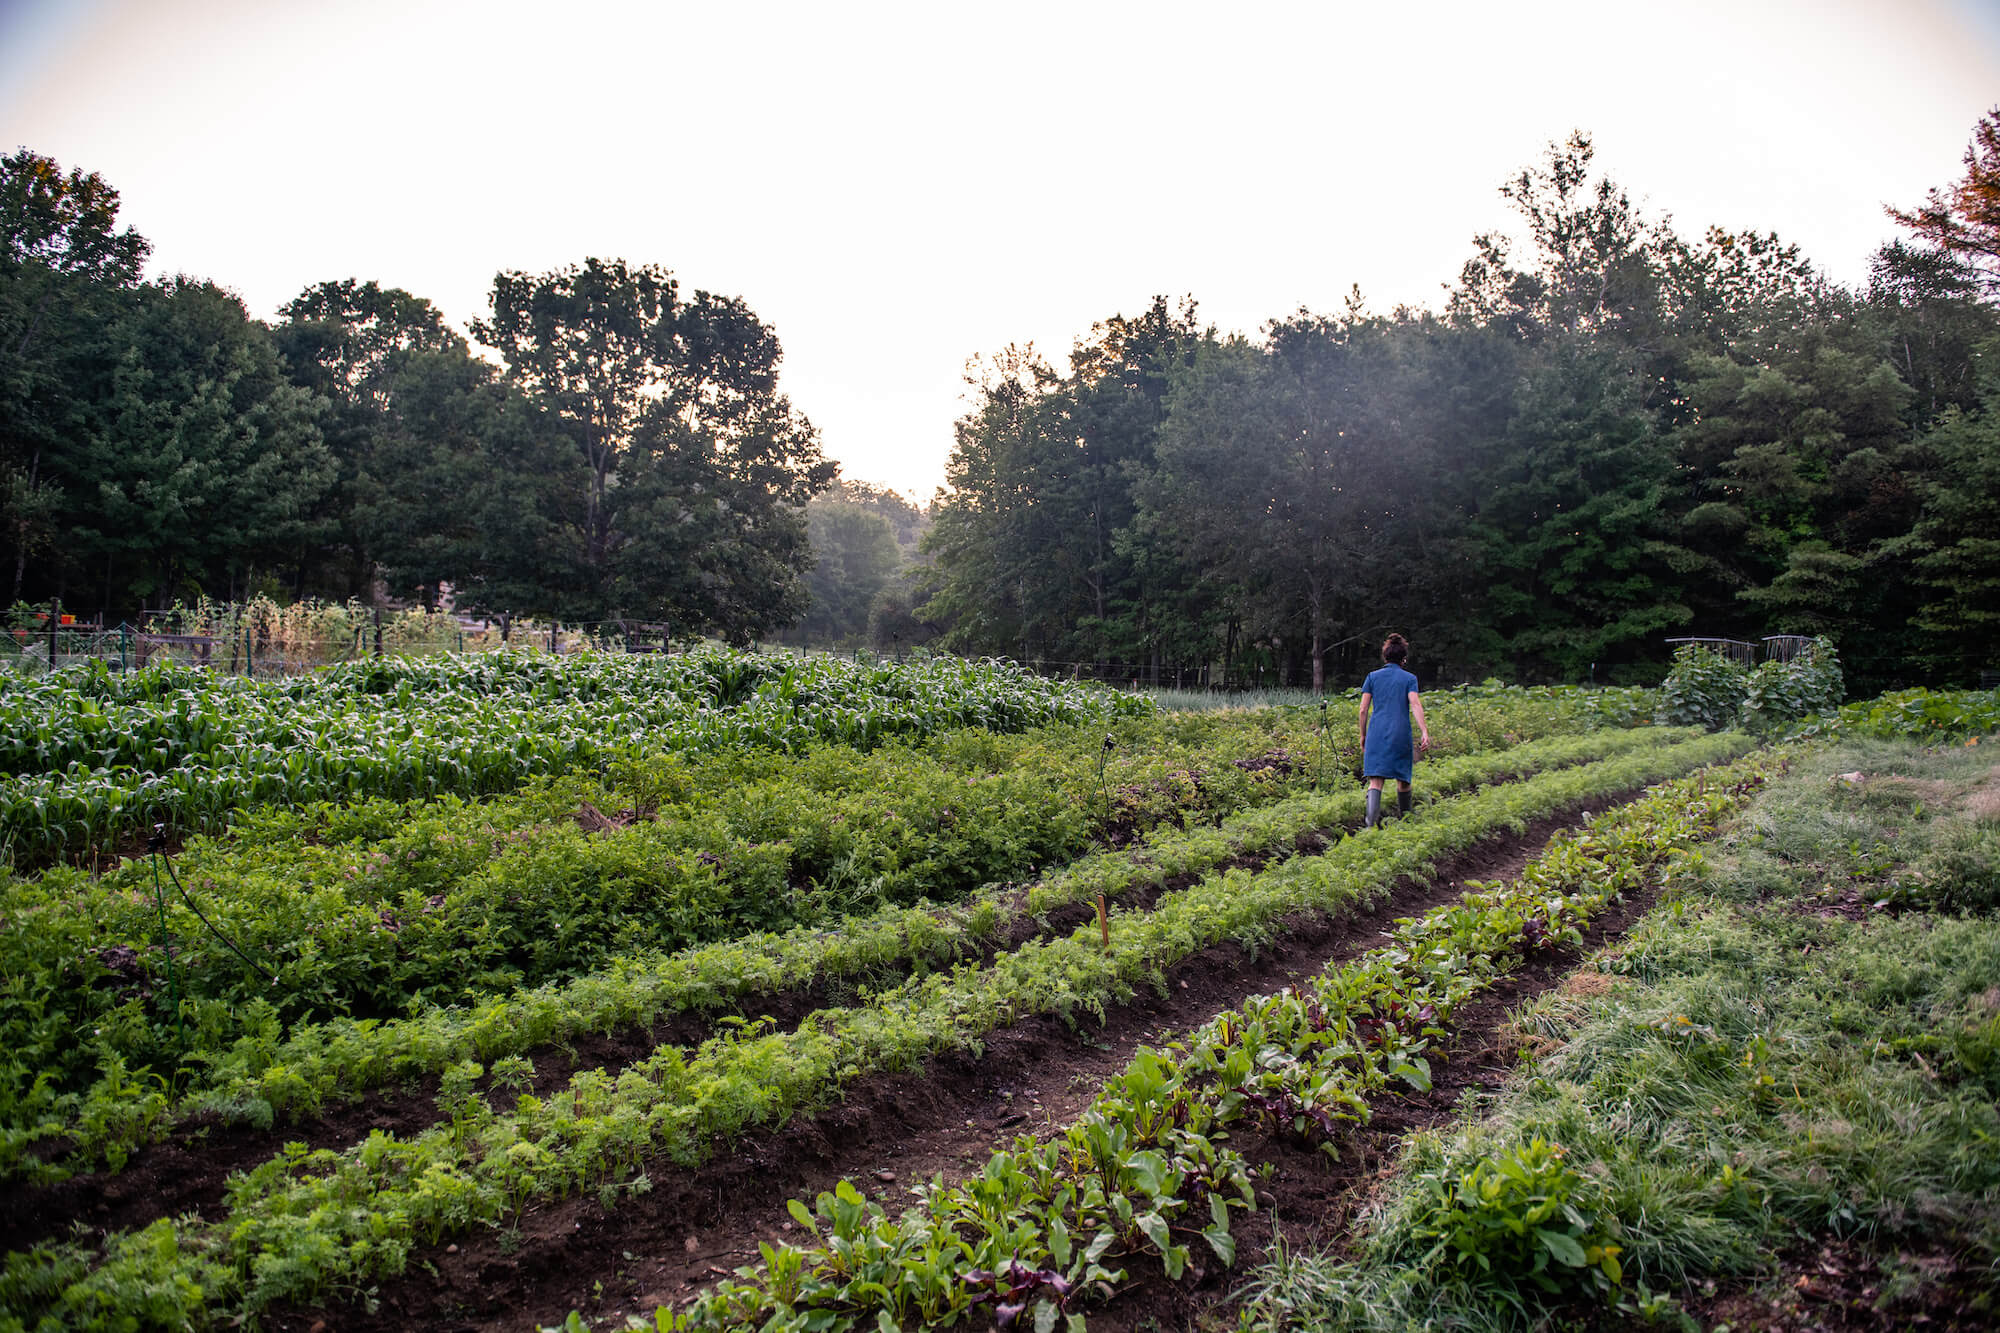 Veggies to Table a grow to donate farm in Maine